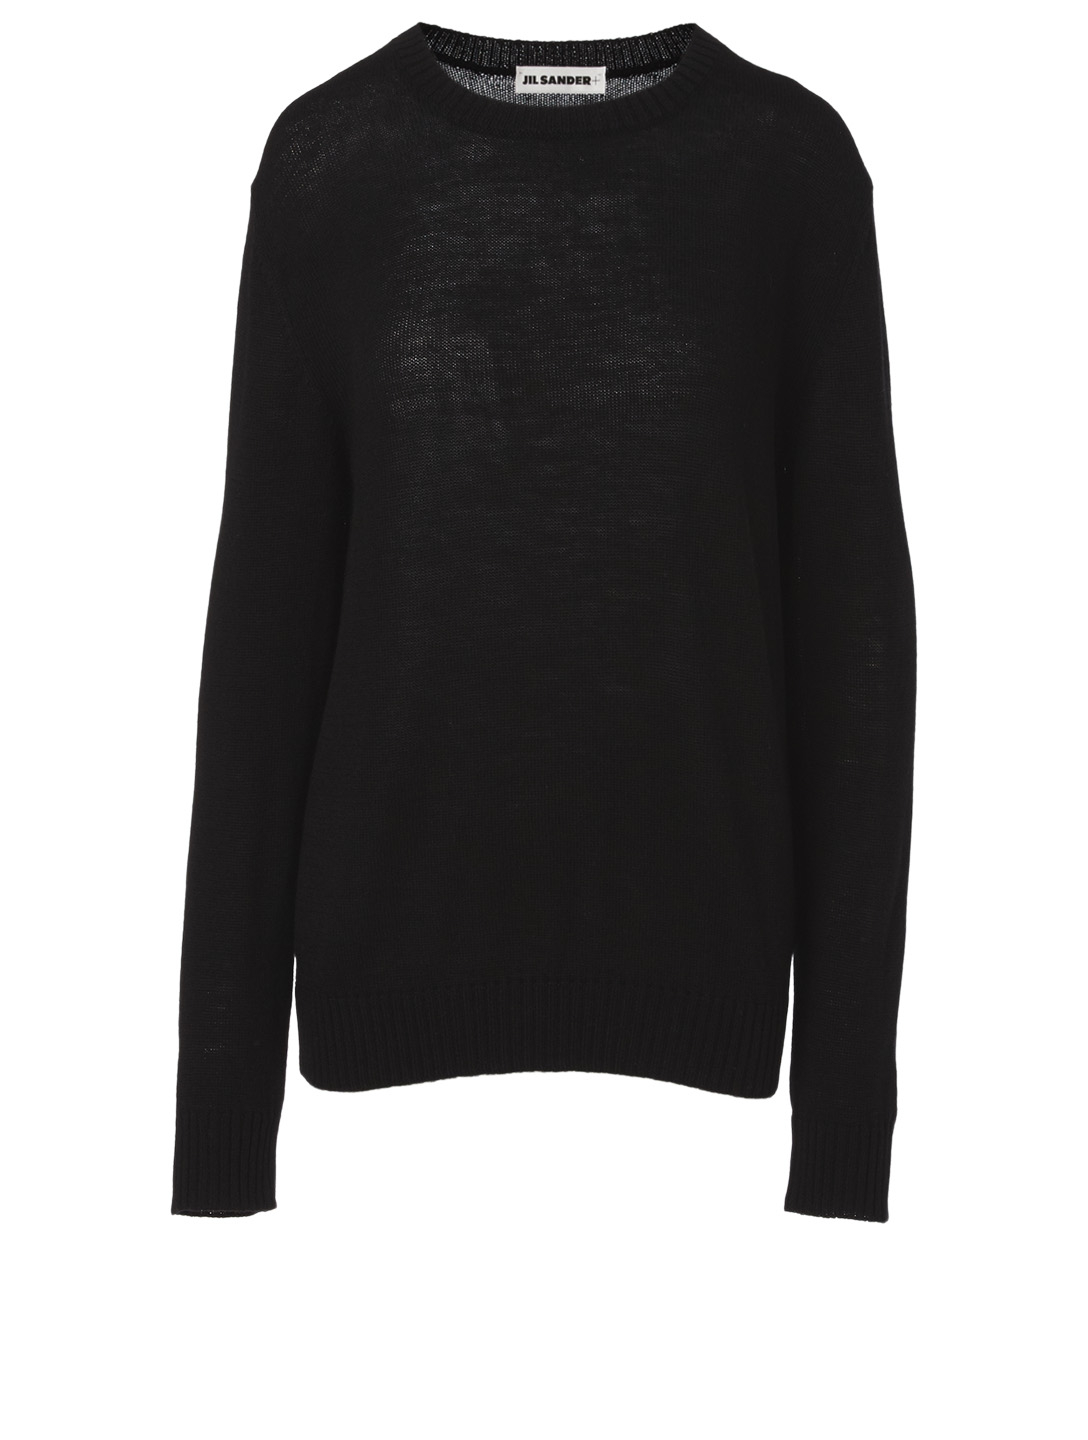 JIL SANDER Wool Crewneck Sweater Women's Black